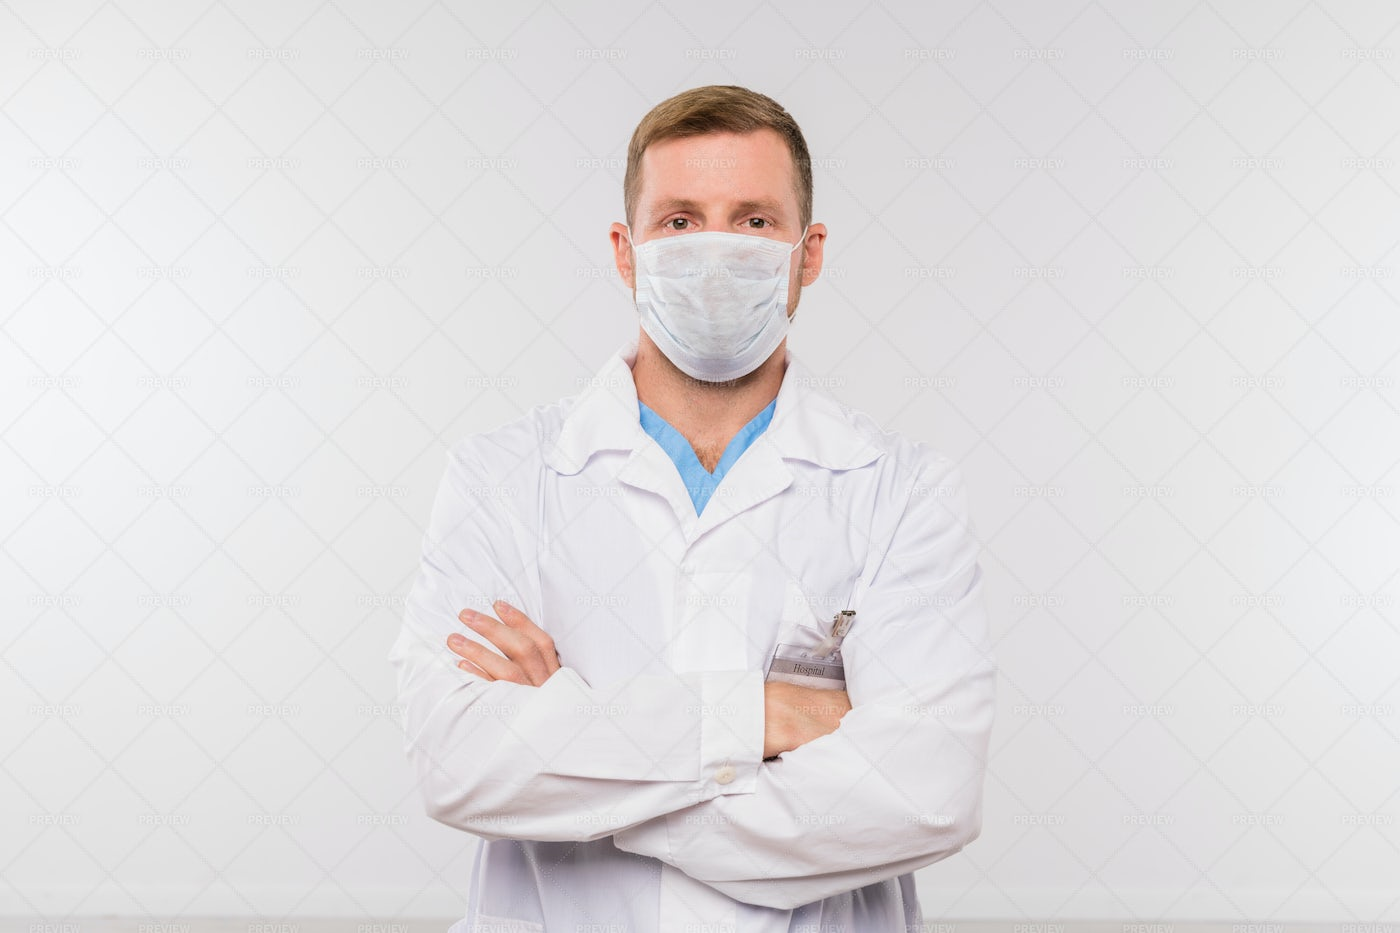 Young Doctor Or Surgeon In...: Stock Photos